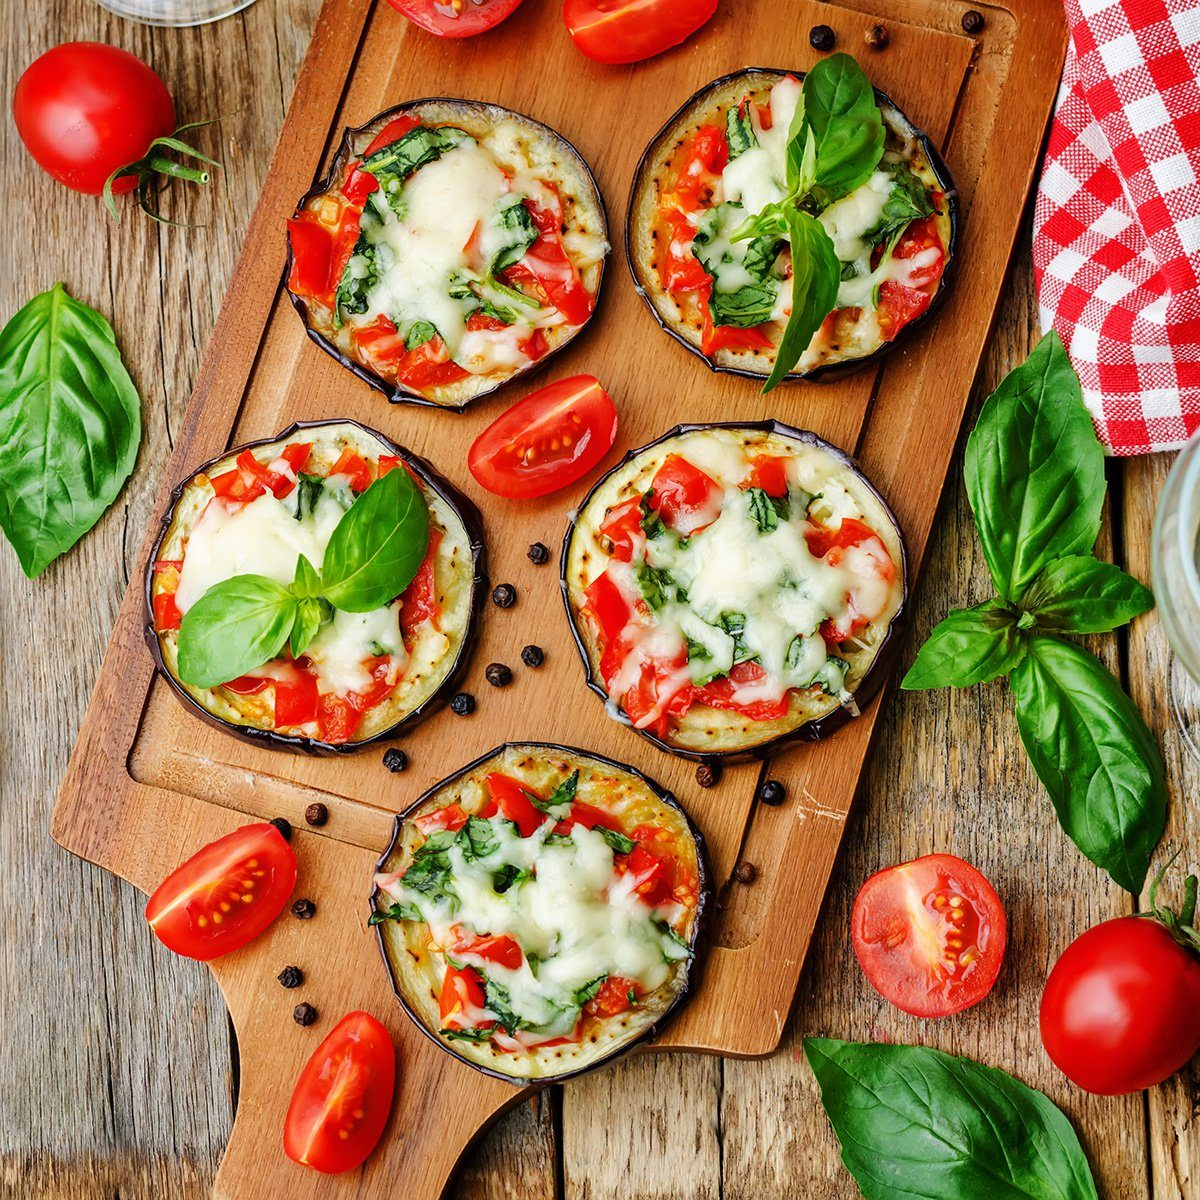 pizza eggplant with tomatoes and Basil. the toning.